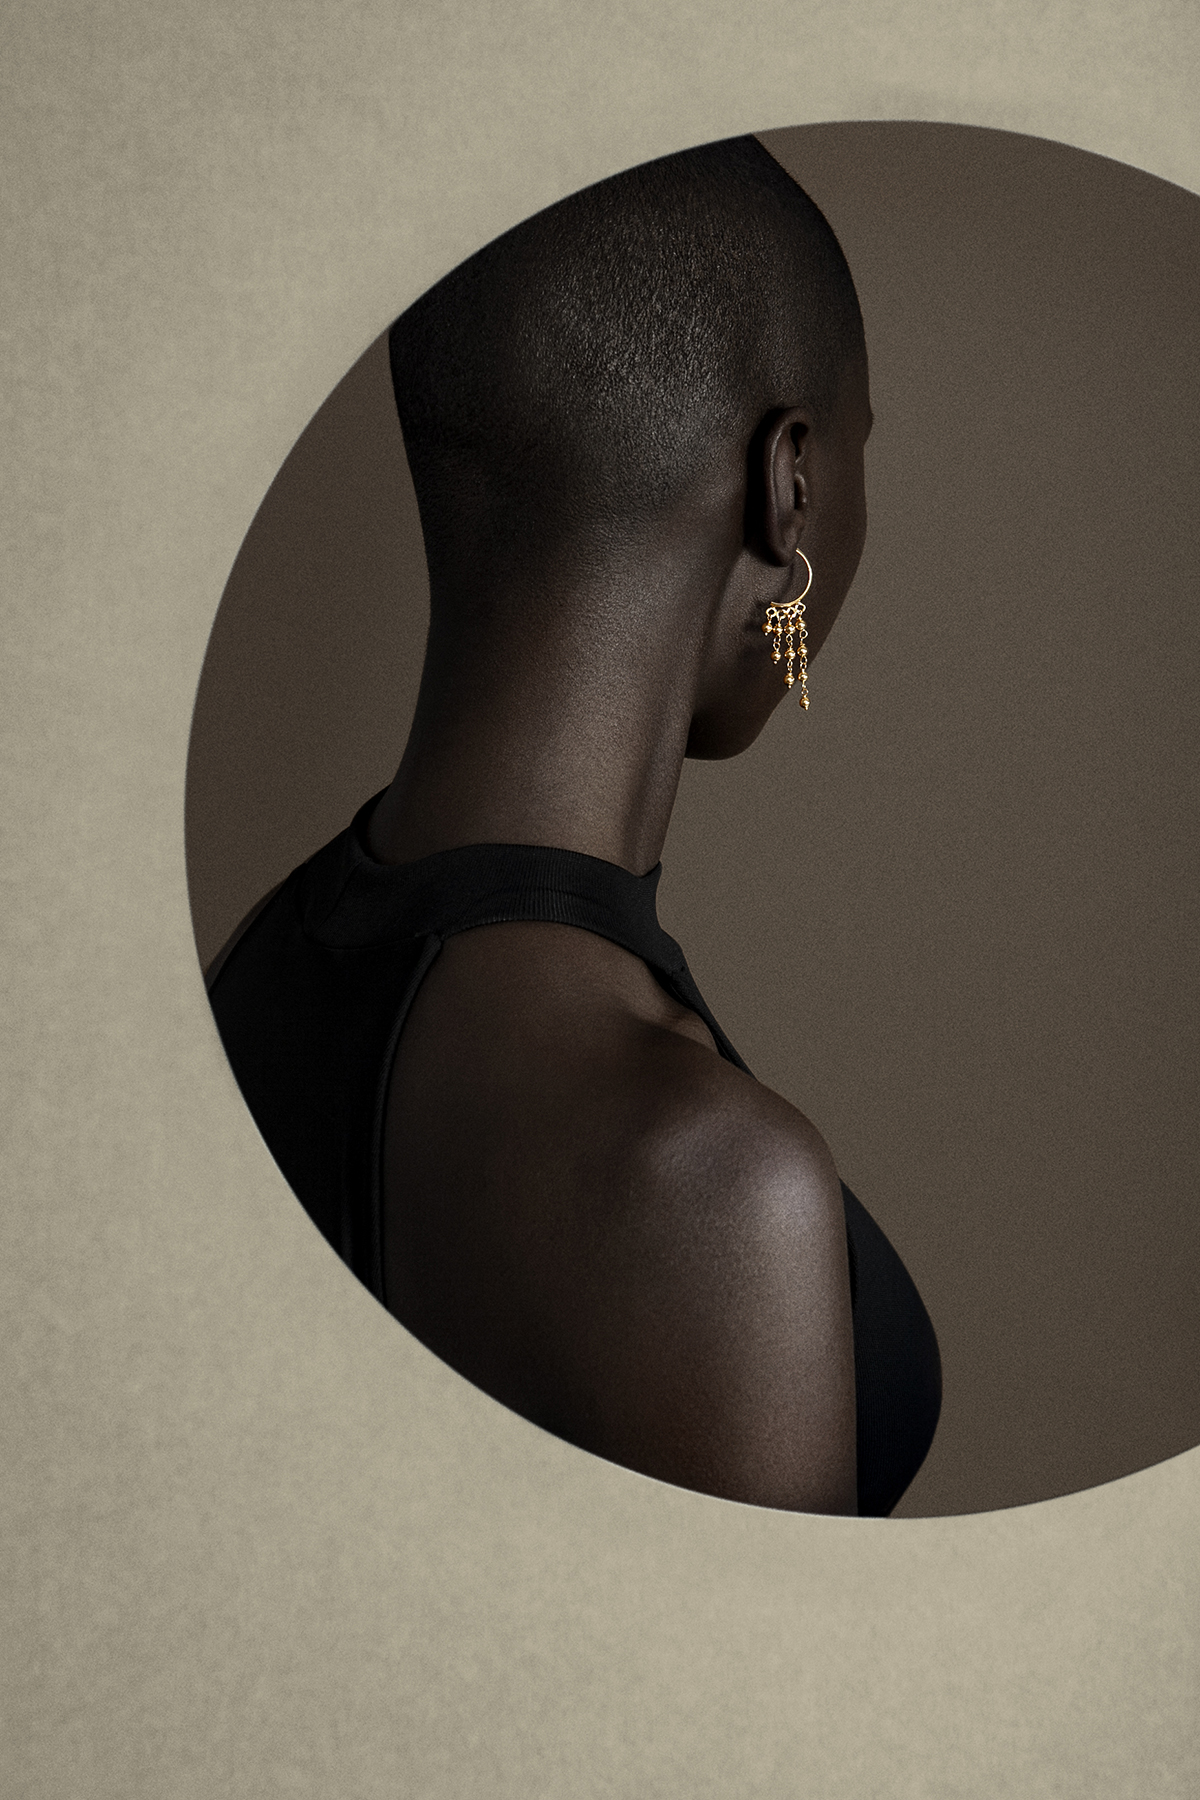 giannina oteto for nashira arno jewelry nyc based fashion latin american designer dominican republic statement gold earrings statement balls hoop long sphere shop online editorial pf19 .jpg